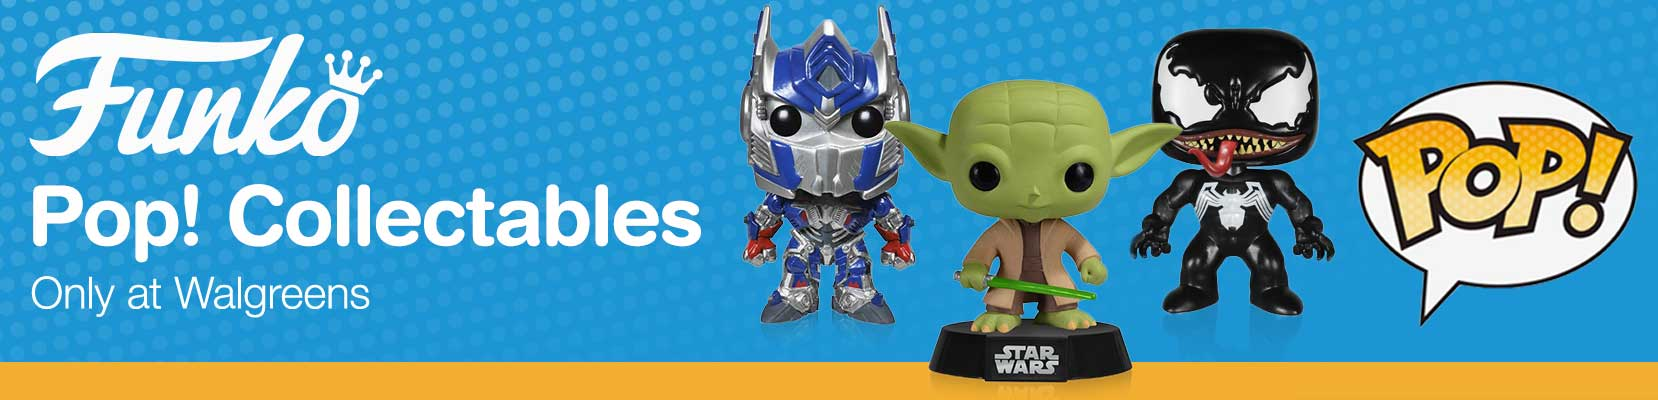 Funko Pop! Collectables. Only at Walgreens.